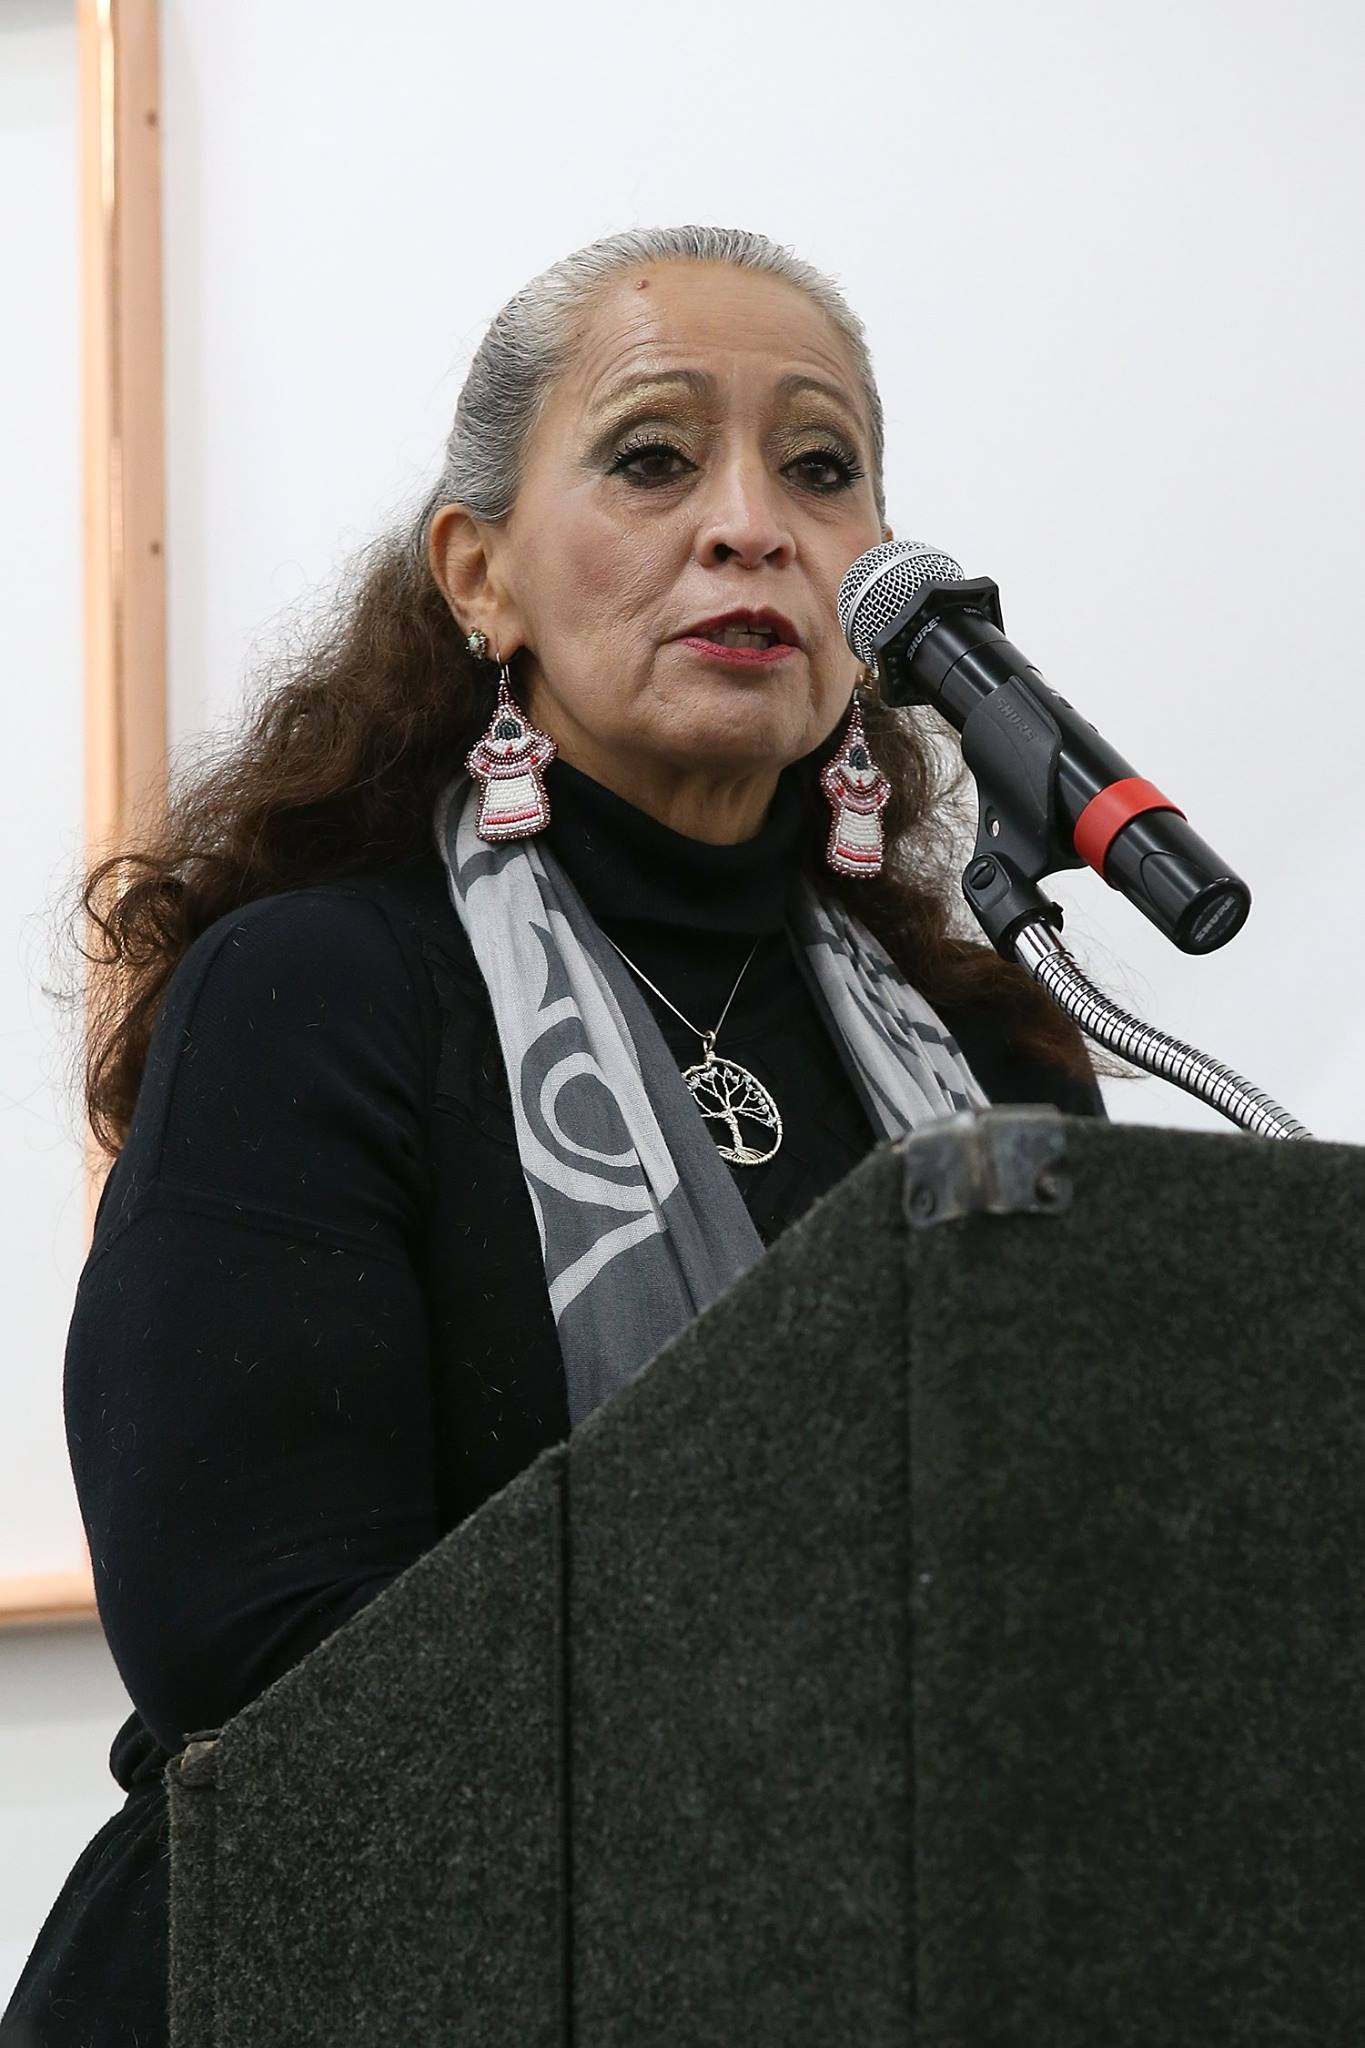 Historian and Standing Rock Sioux tribal member, LaDonna Brave Bull Allard